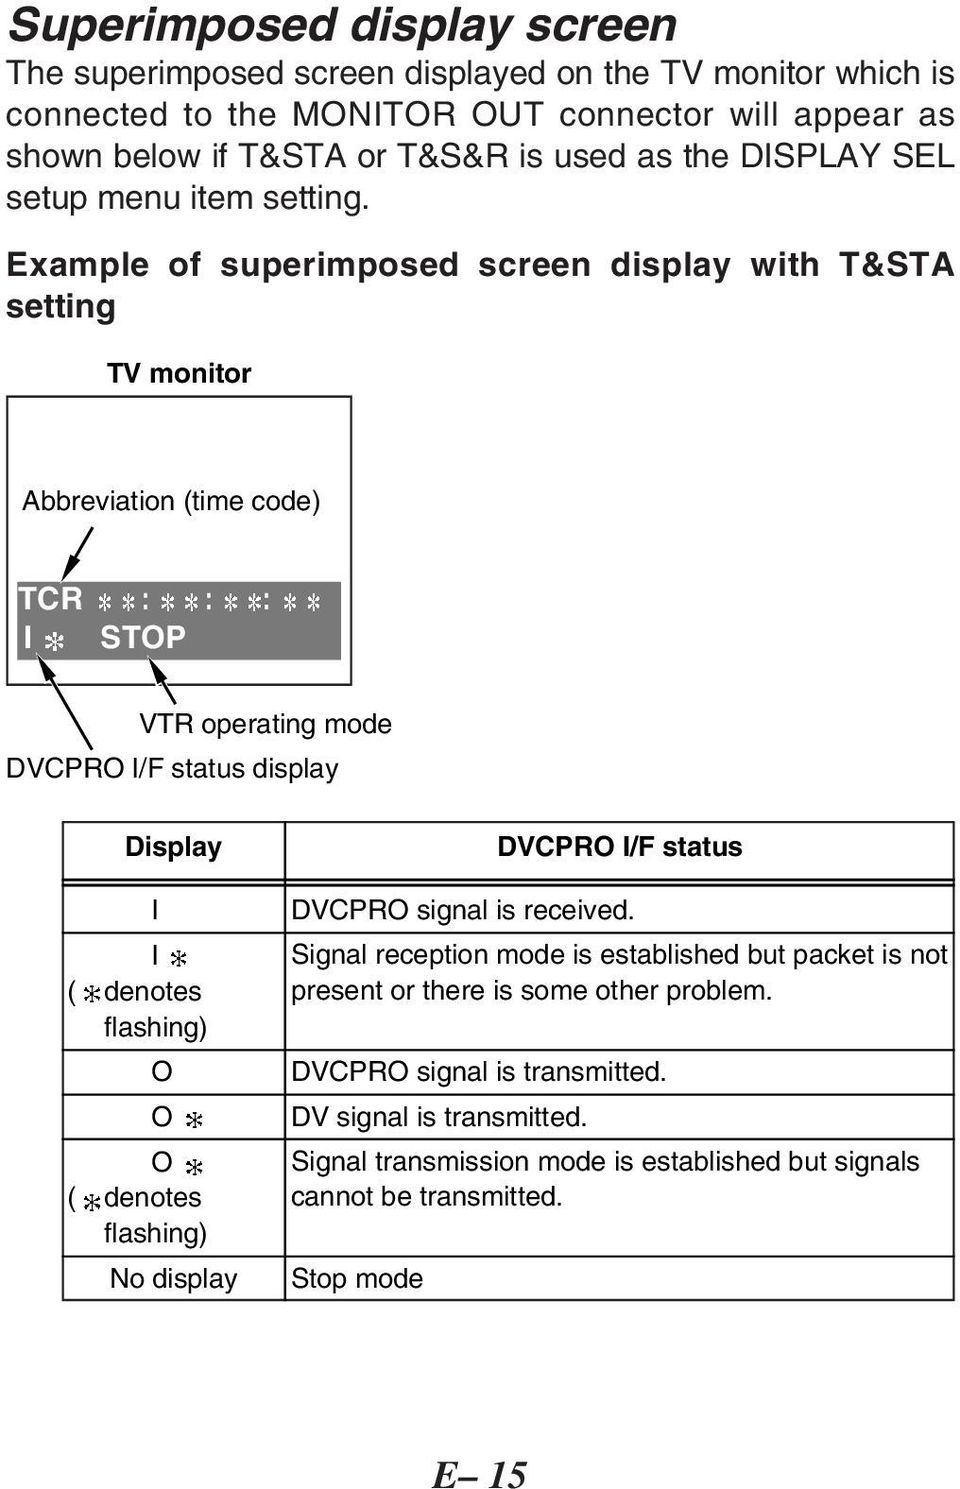 Example of superimposed screen display with T&STA setting TV monitor Abbreviation (time code) TCR : : : I STOP VTR operating mode DVCPRO I/F status display Display I ( denotes